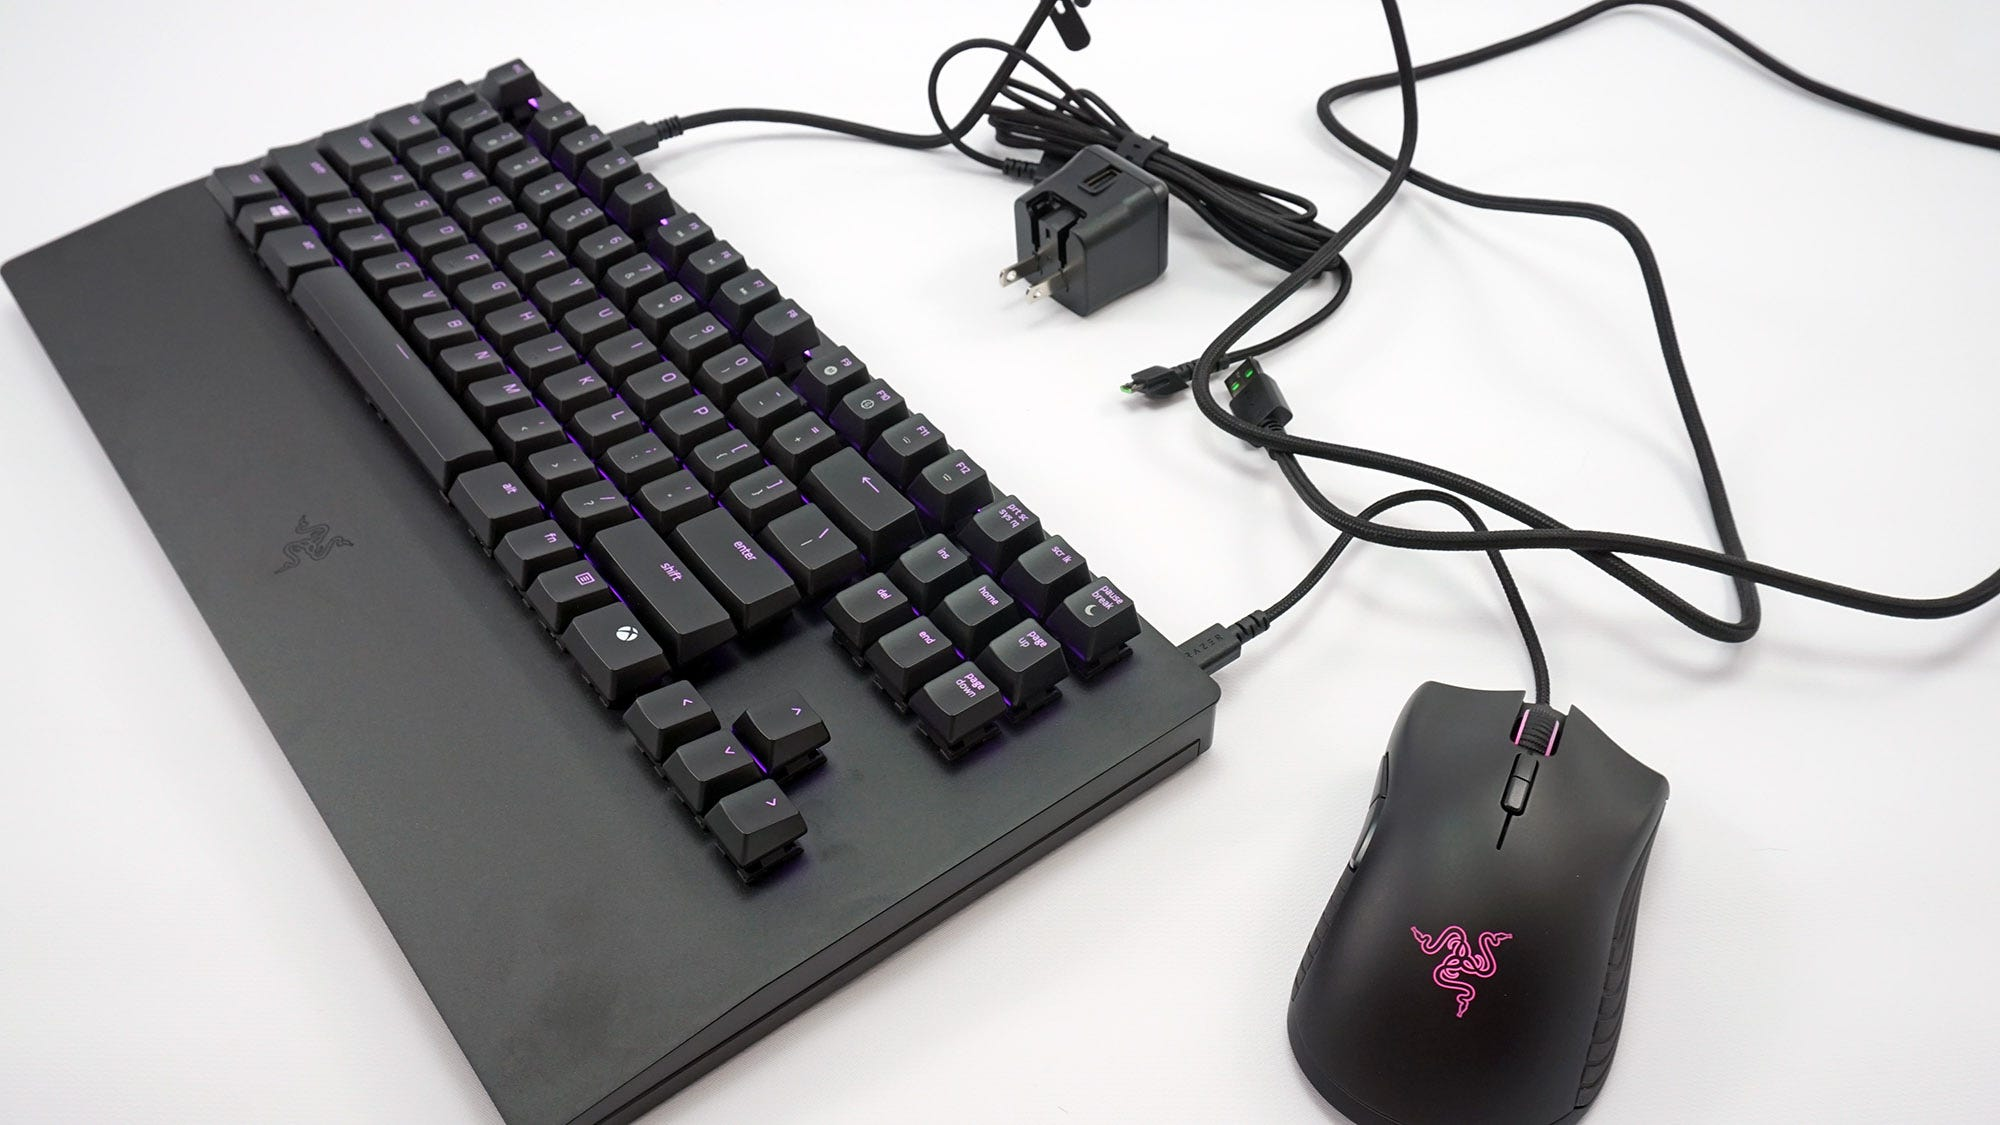 The Turret keyboard, mouse, three charging cables, wall wart, and wireless USB receiver.